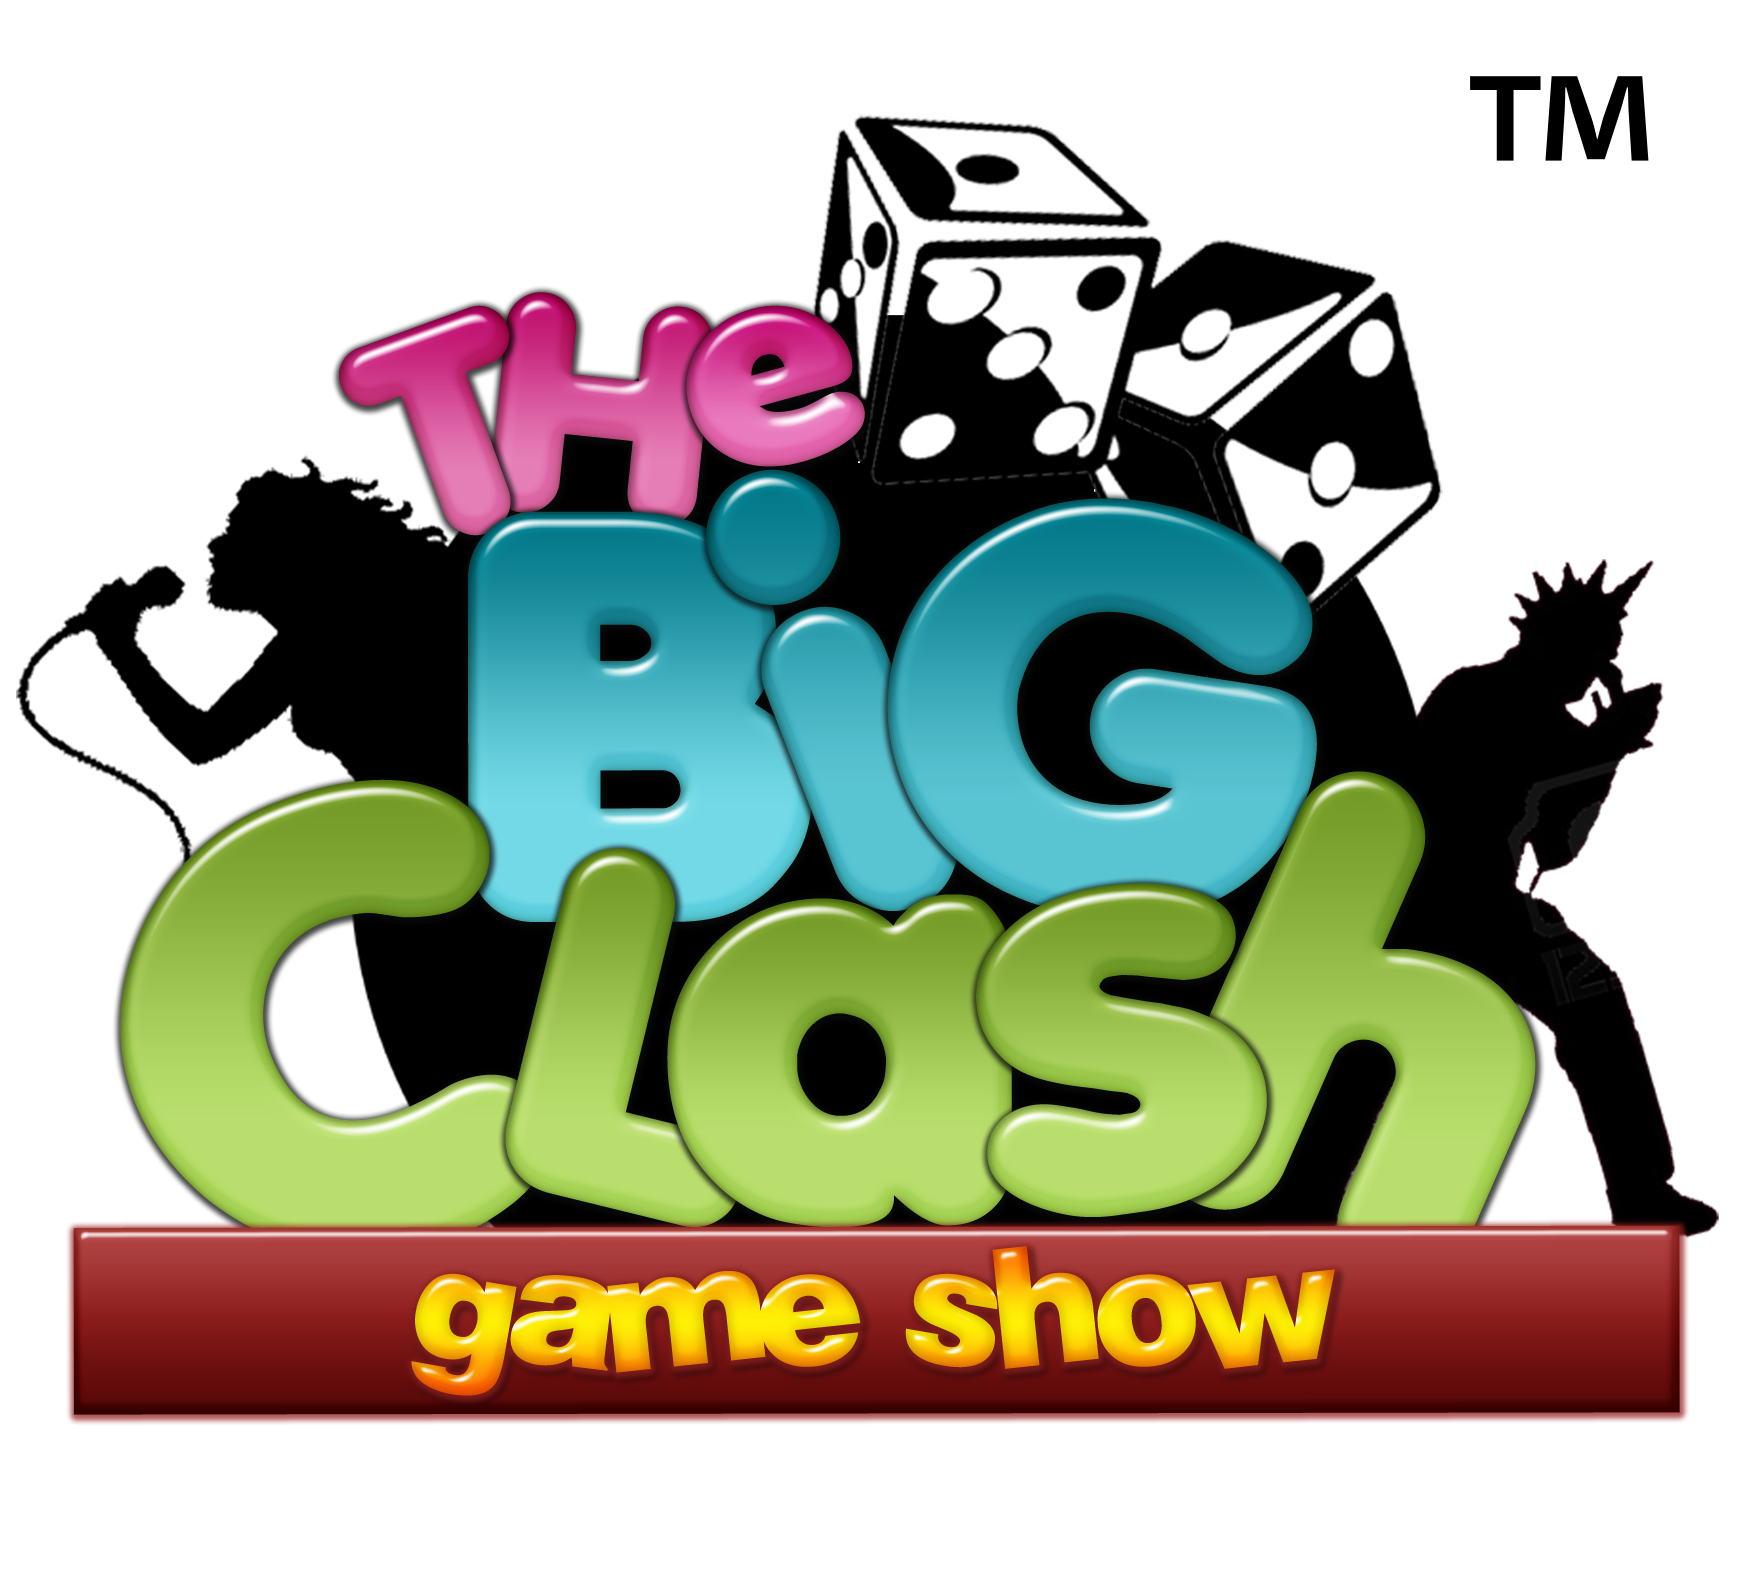 The Big Clash Gameshow